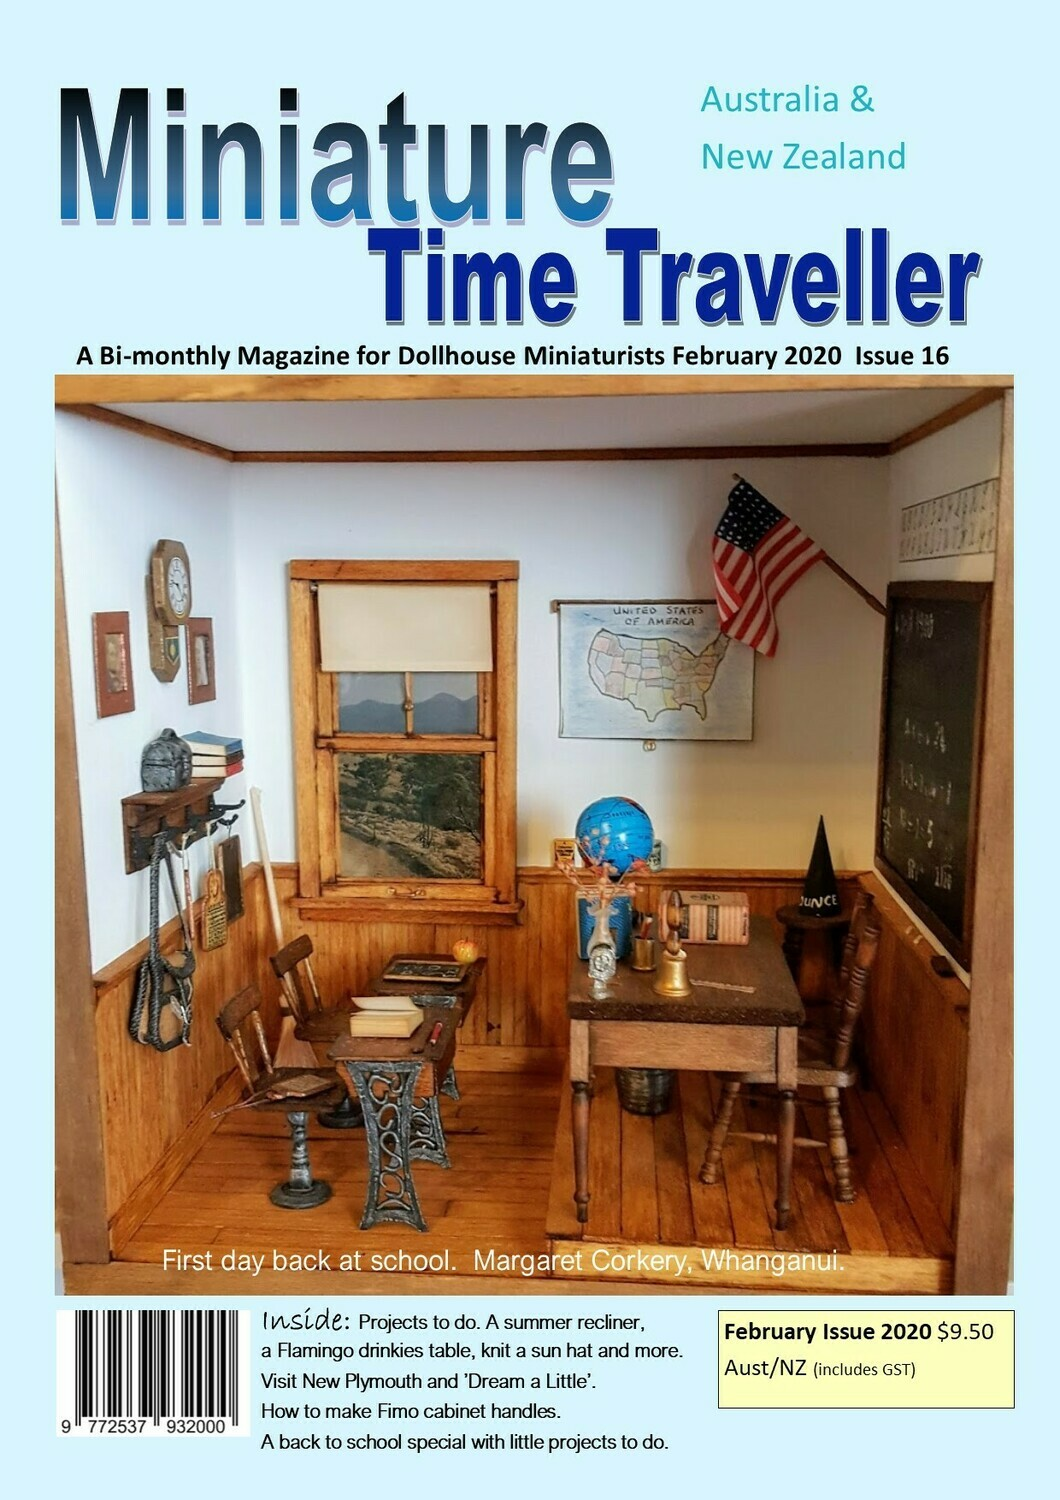 February 2020 Miniature Time Traveller Magazine - Single copy. P&P extra.